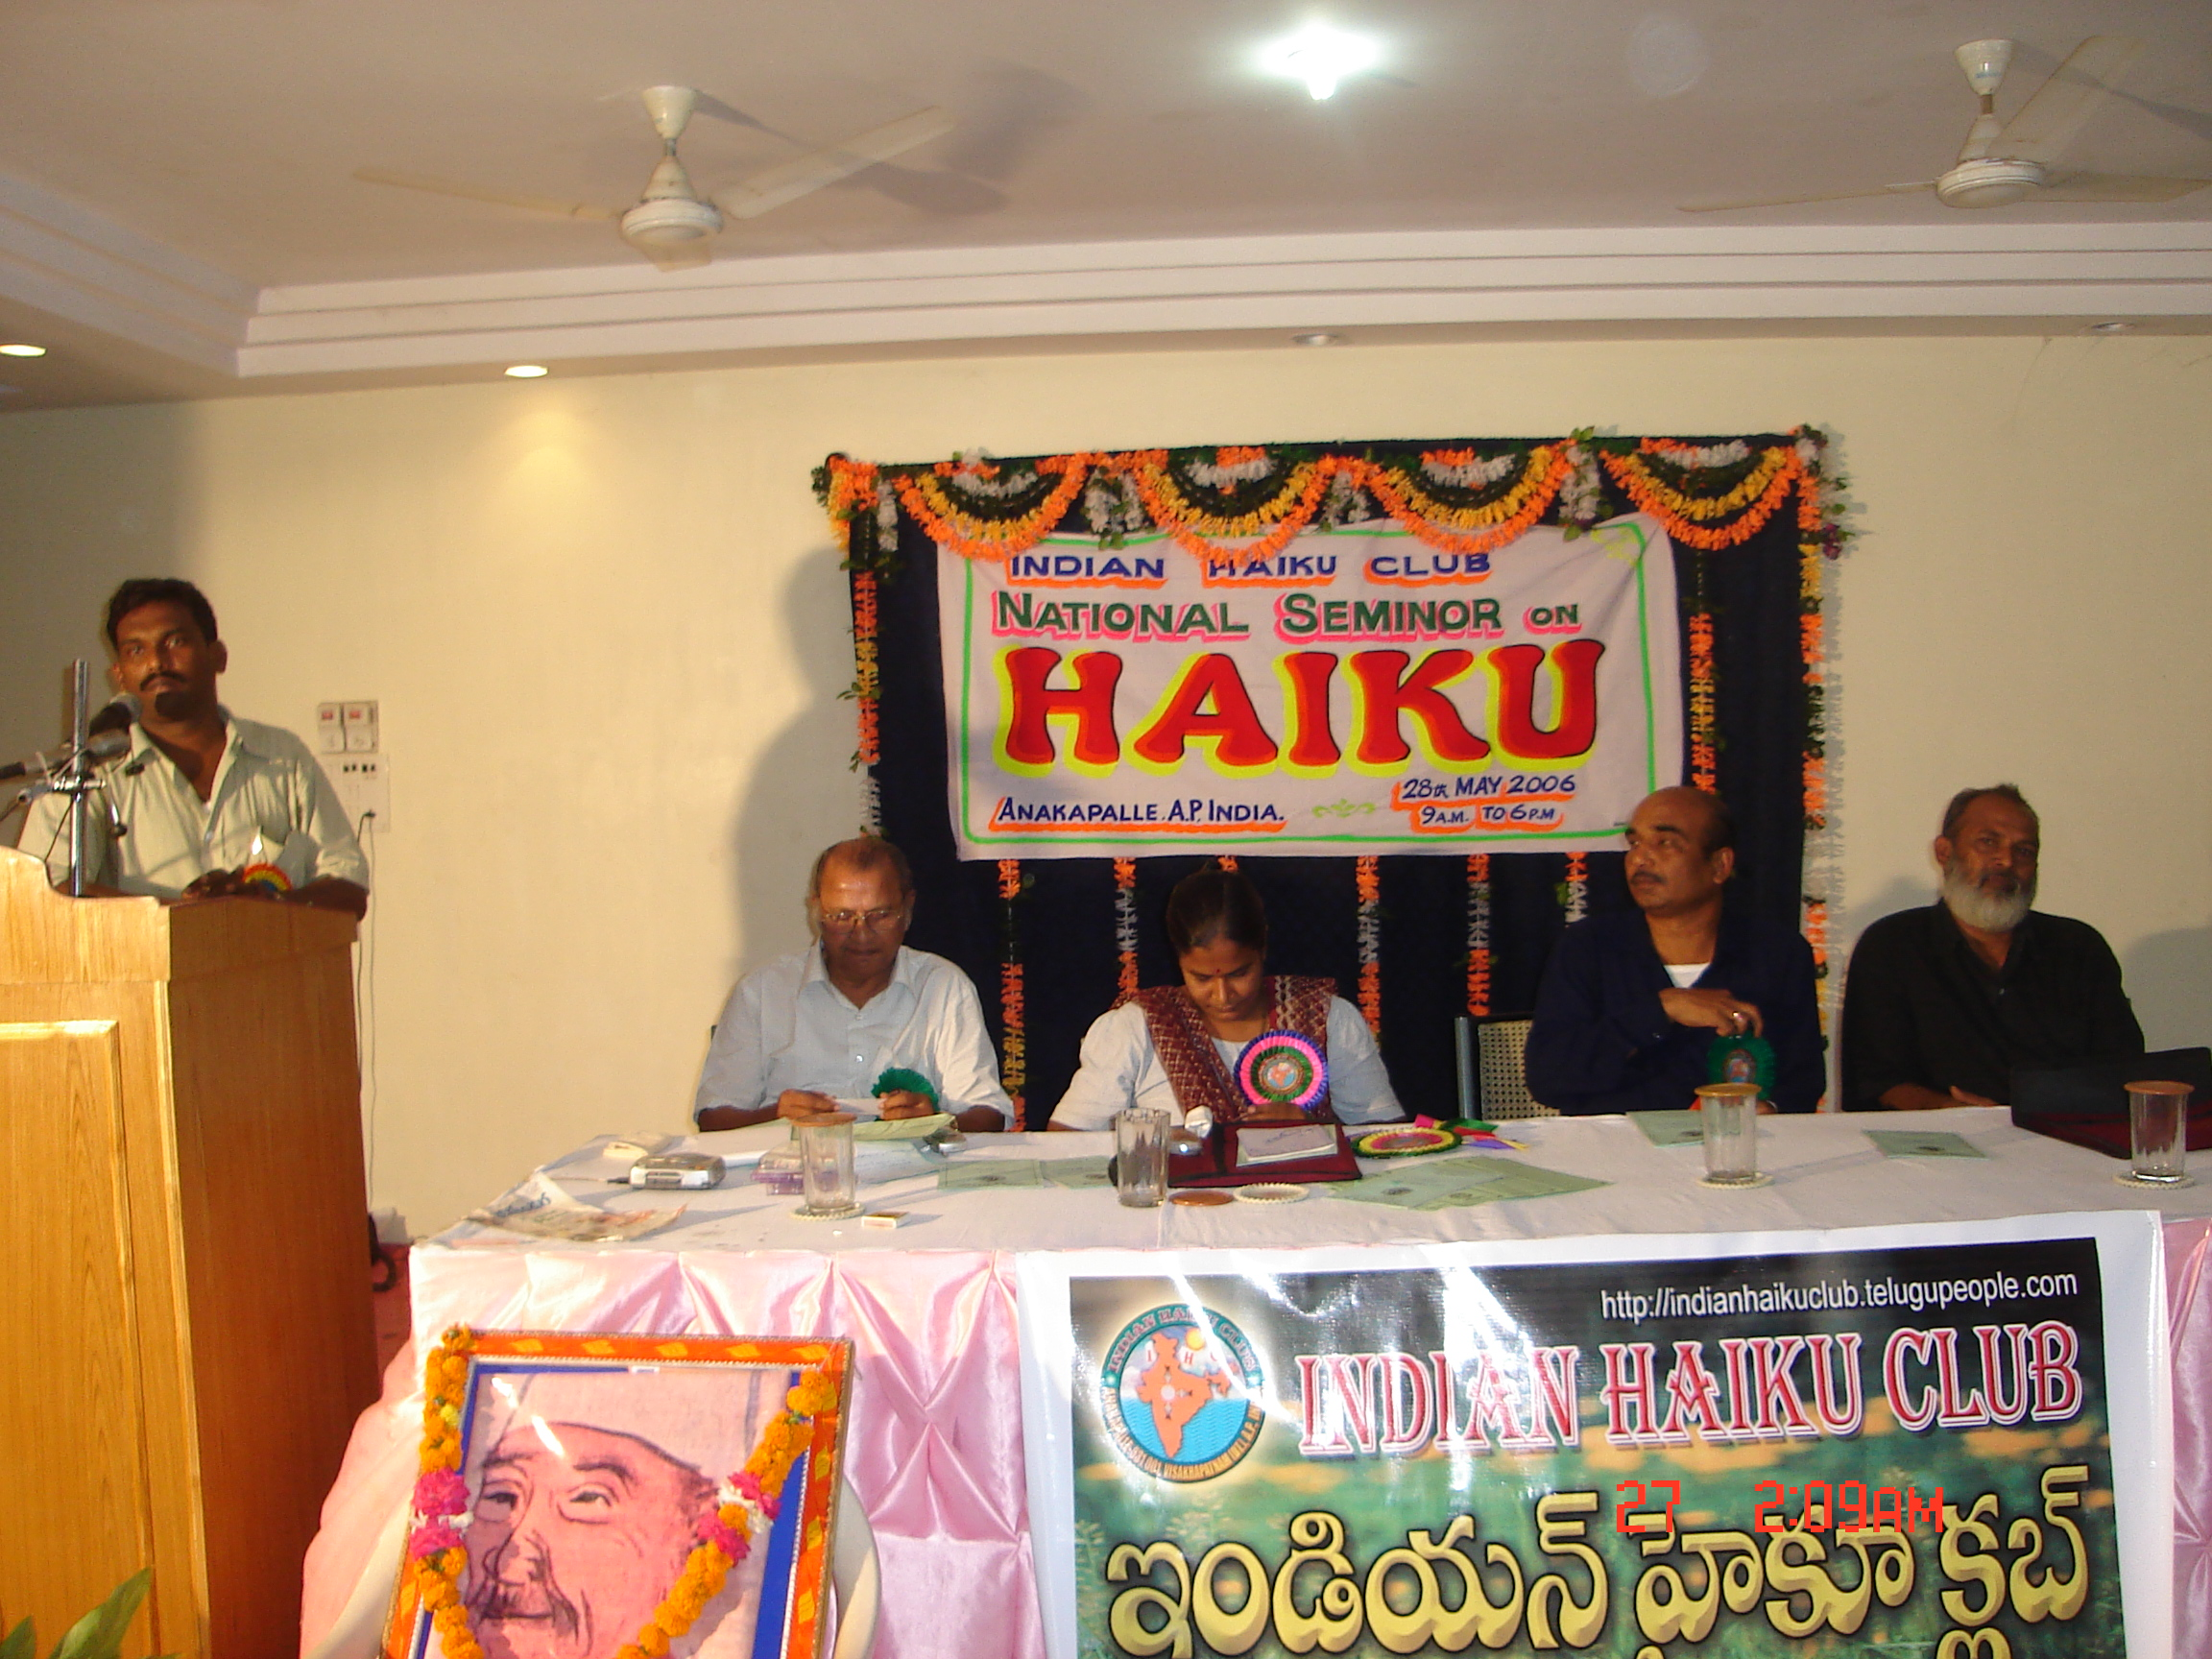 NATIONLA HAIKU SEMINAR ON 2006 MAY 28-INDIAN HAIKU CLUB-TALATHOTI PRITHVI RAJ